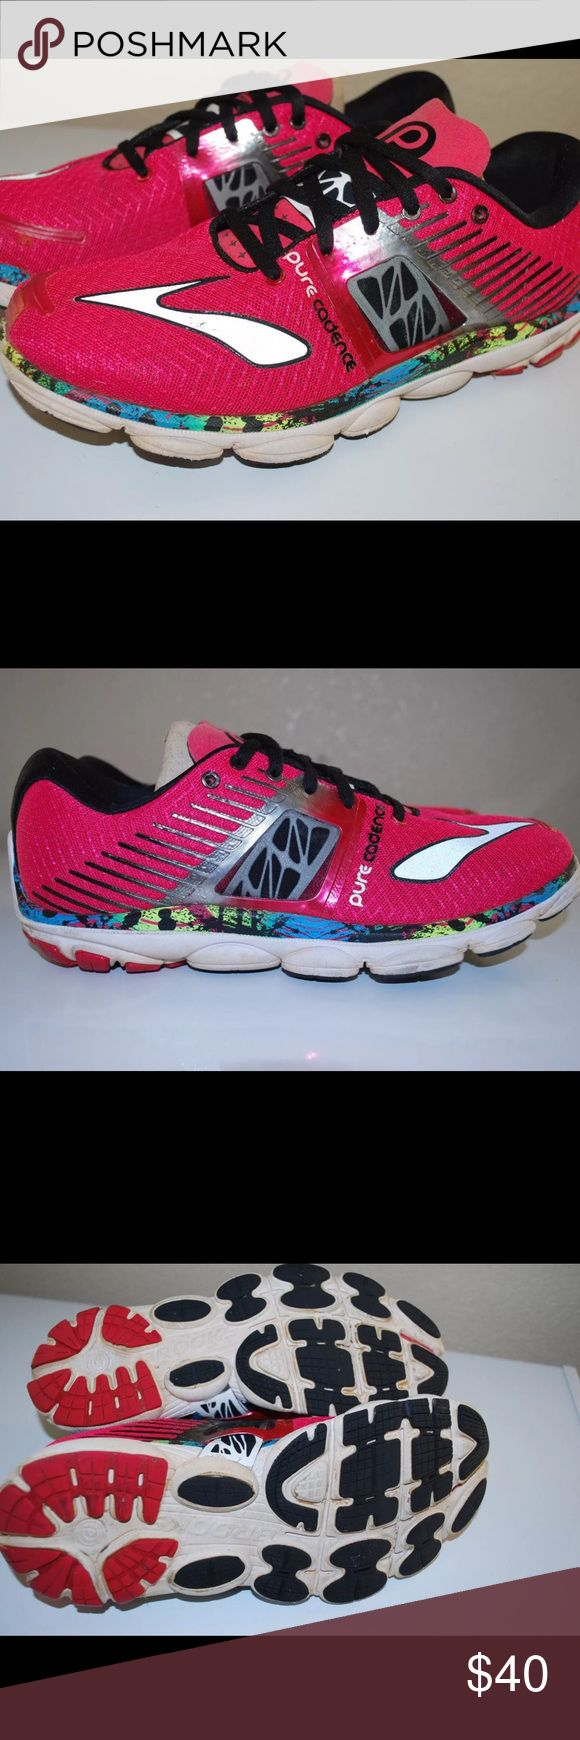 Brooks Cadence running shoes Brooks Cadence brightly colored ladies running shoes. Great condition and still have lots of life left in them! Brooks Shoes Athletic Shoes